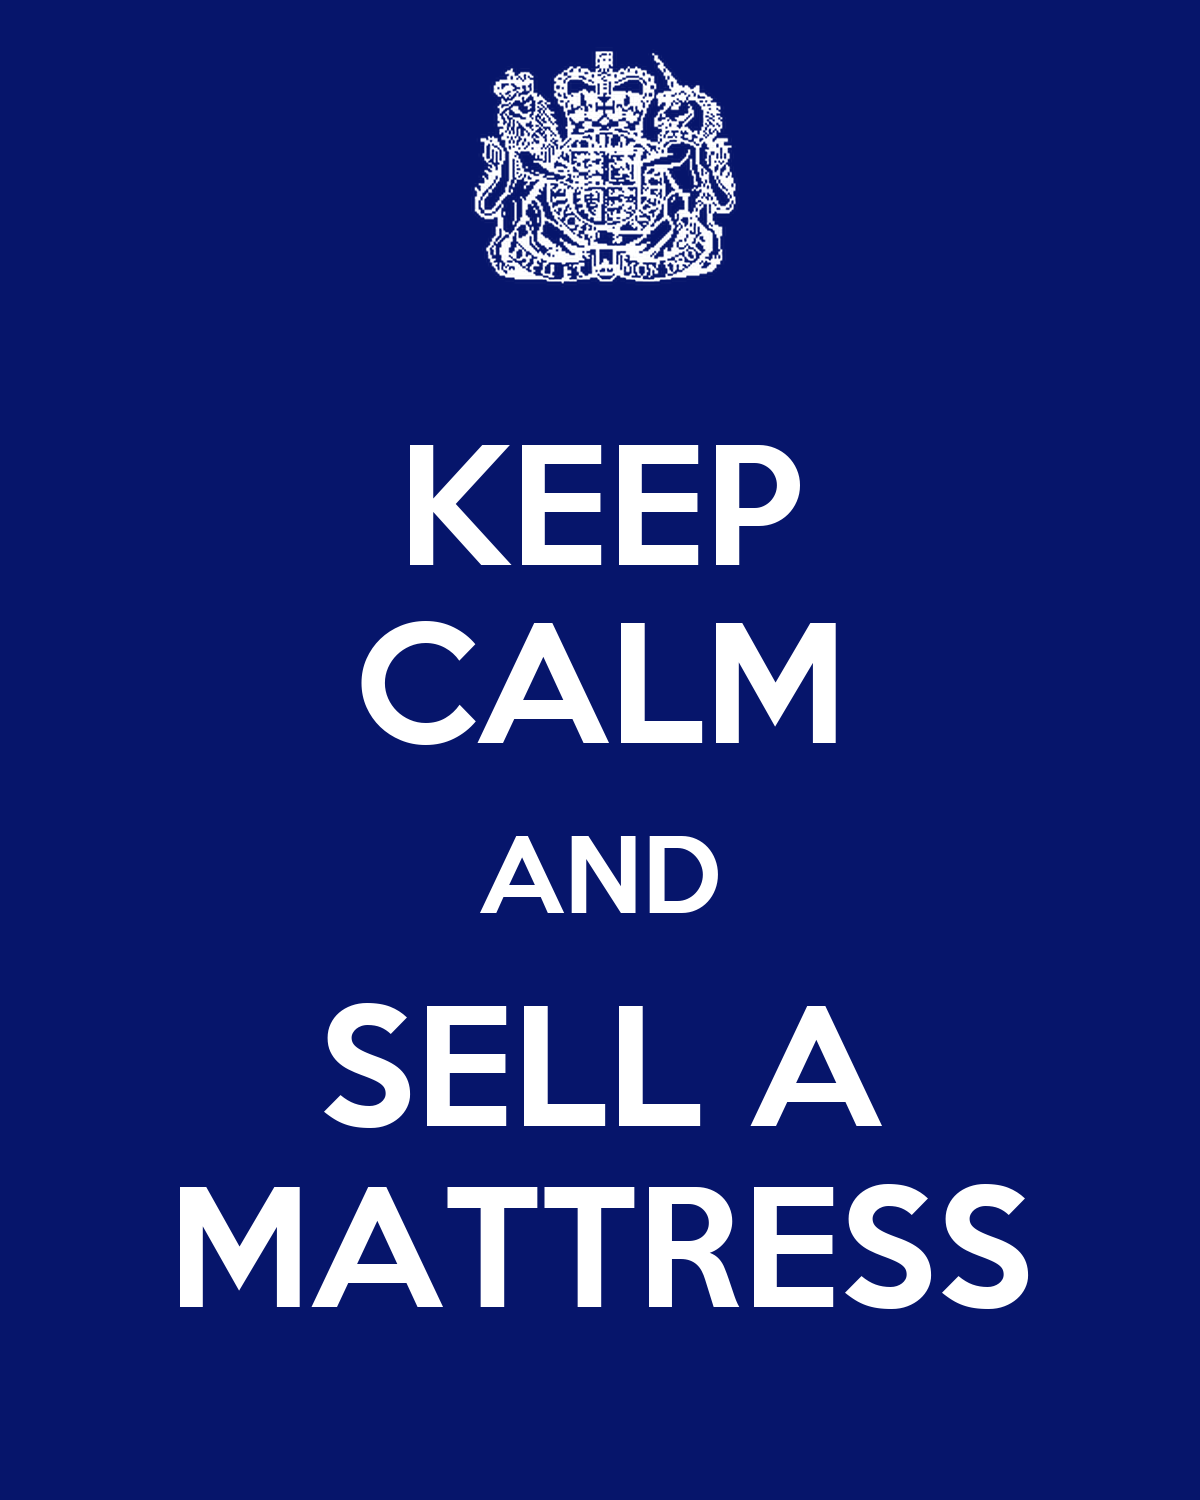 KEEP CALM AND SELL A MATTRESS Poster VLAD